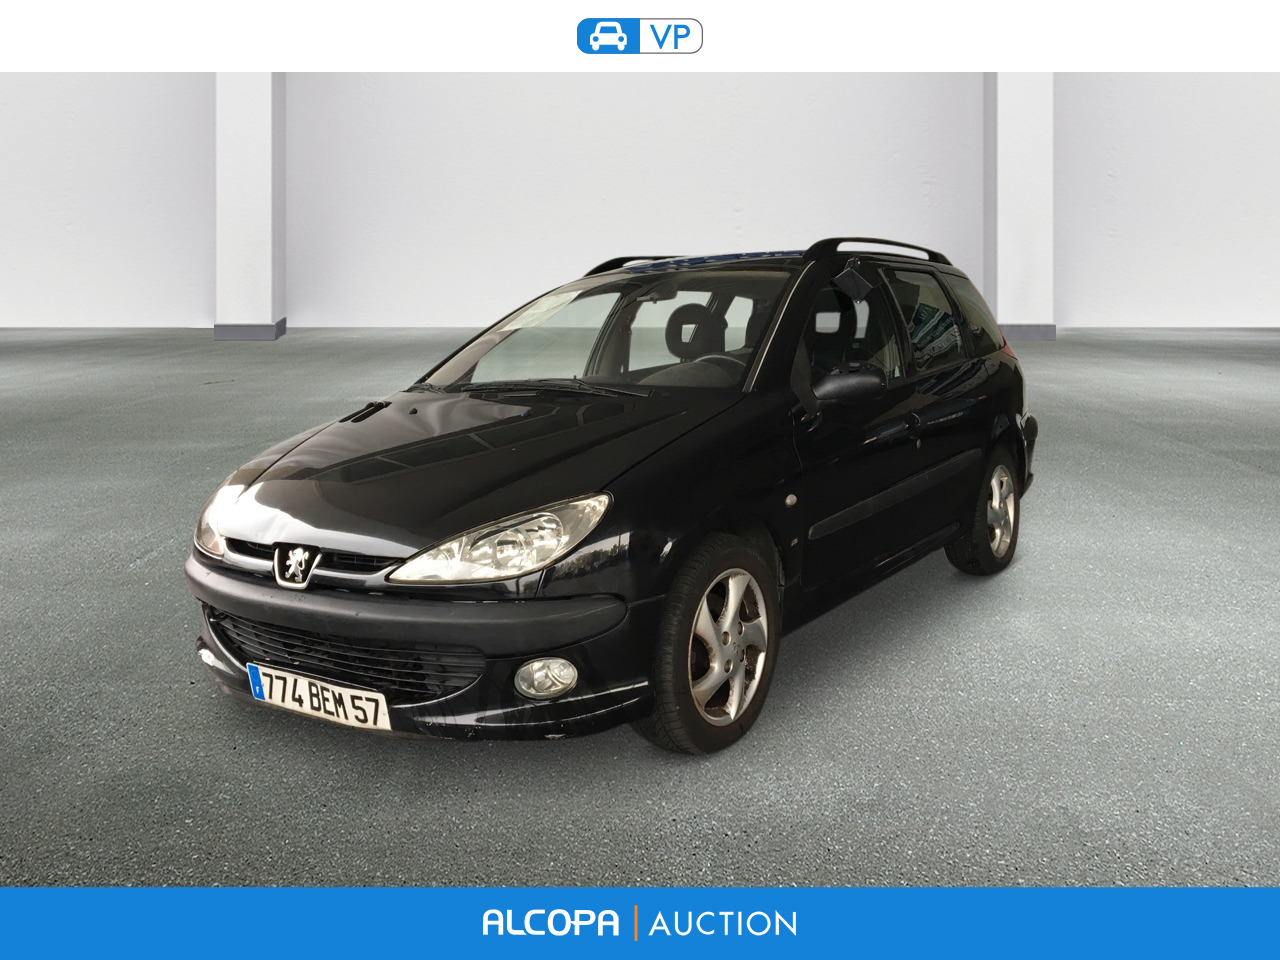 peugeot 206 sw 2 0 hdi xs premium alcopa auction. Black Bedroom Furniture Sets. Home Design Ideas